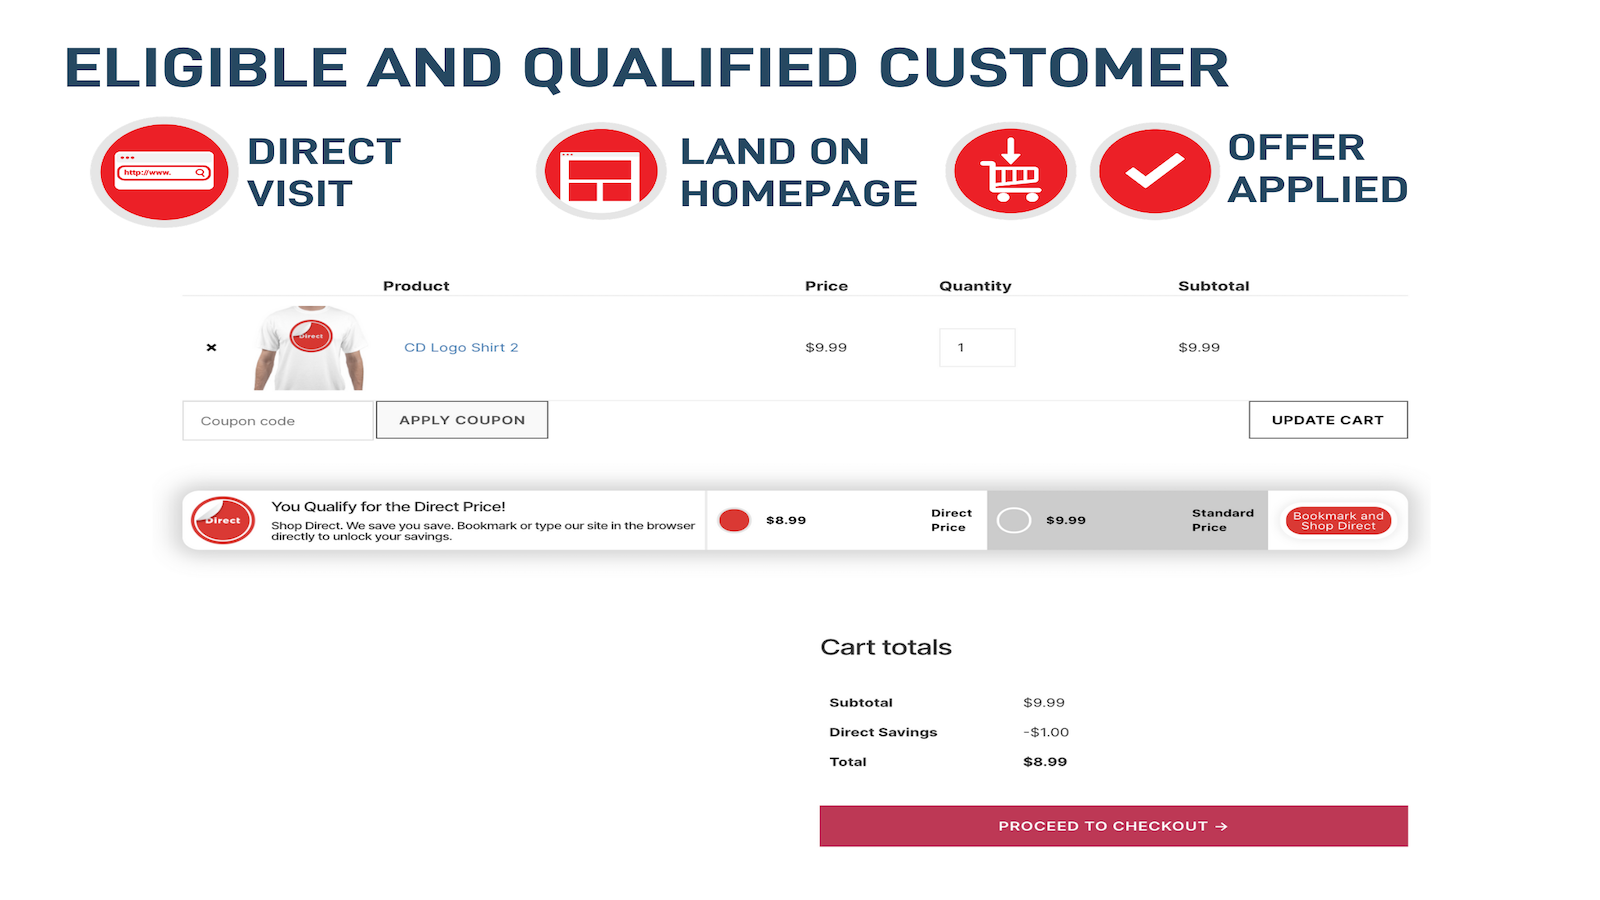 Eligible and Qualified for Discount